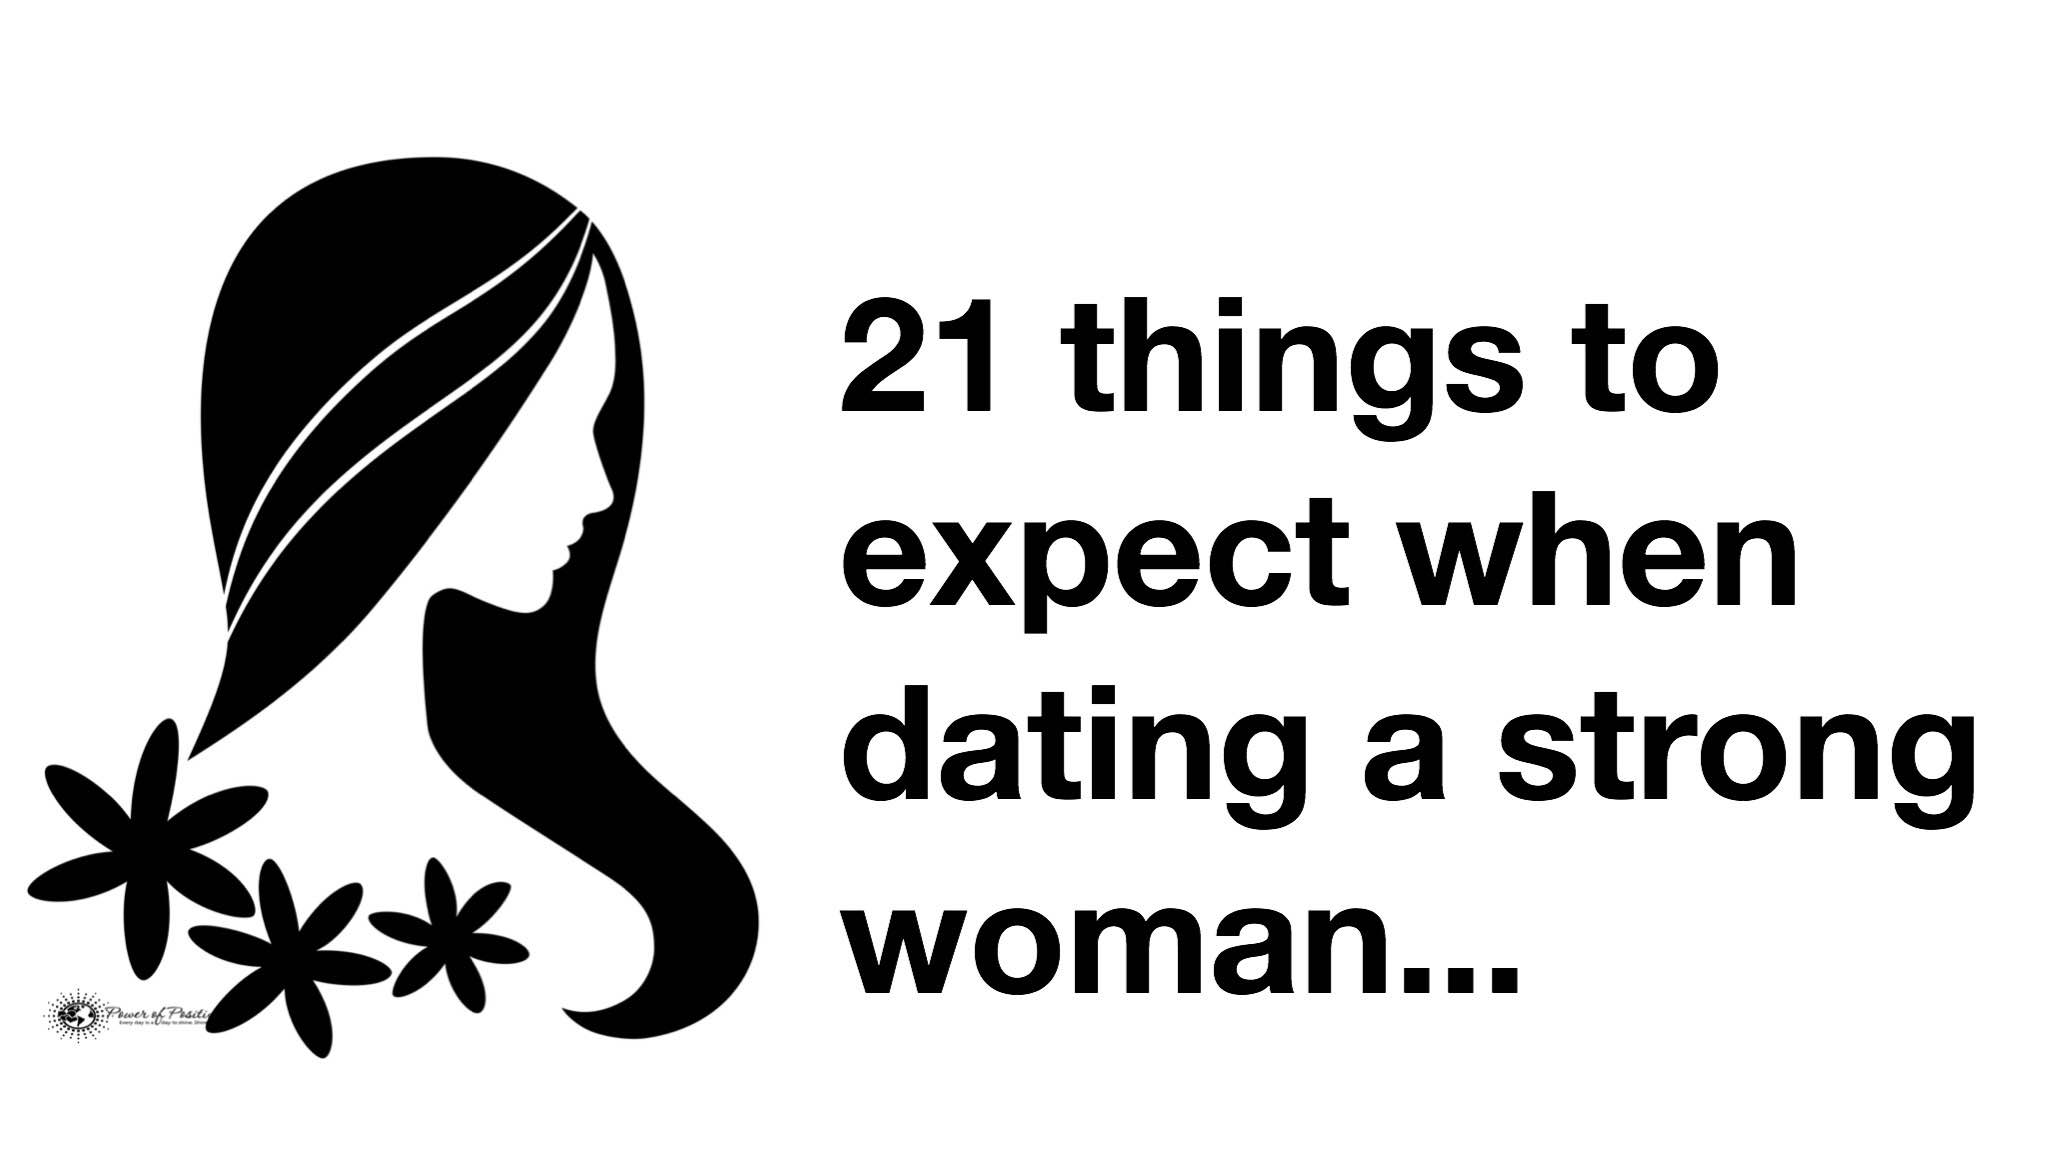 10 Reasons Strong Women Approach Relationships Differently